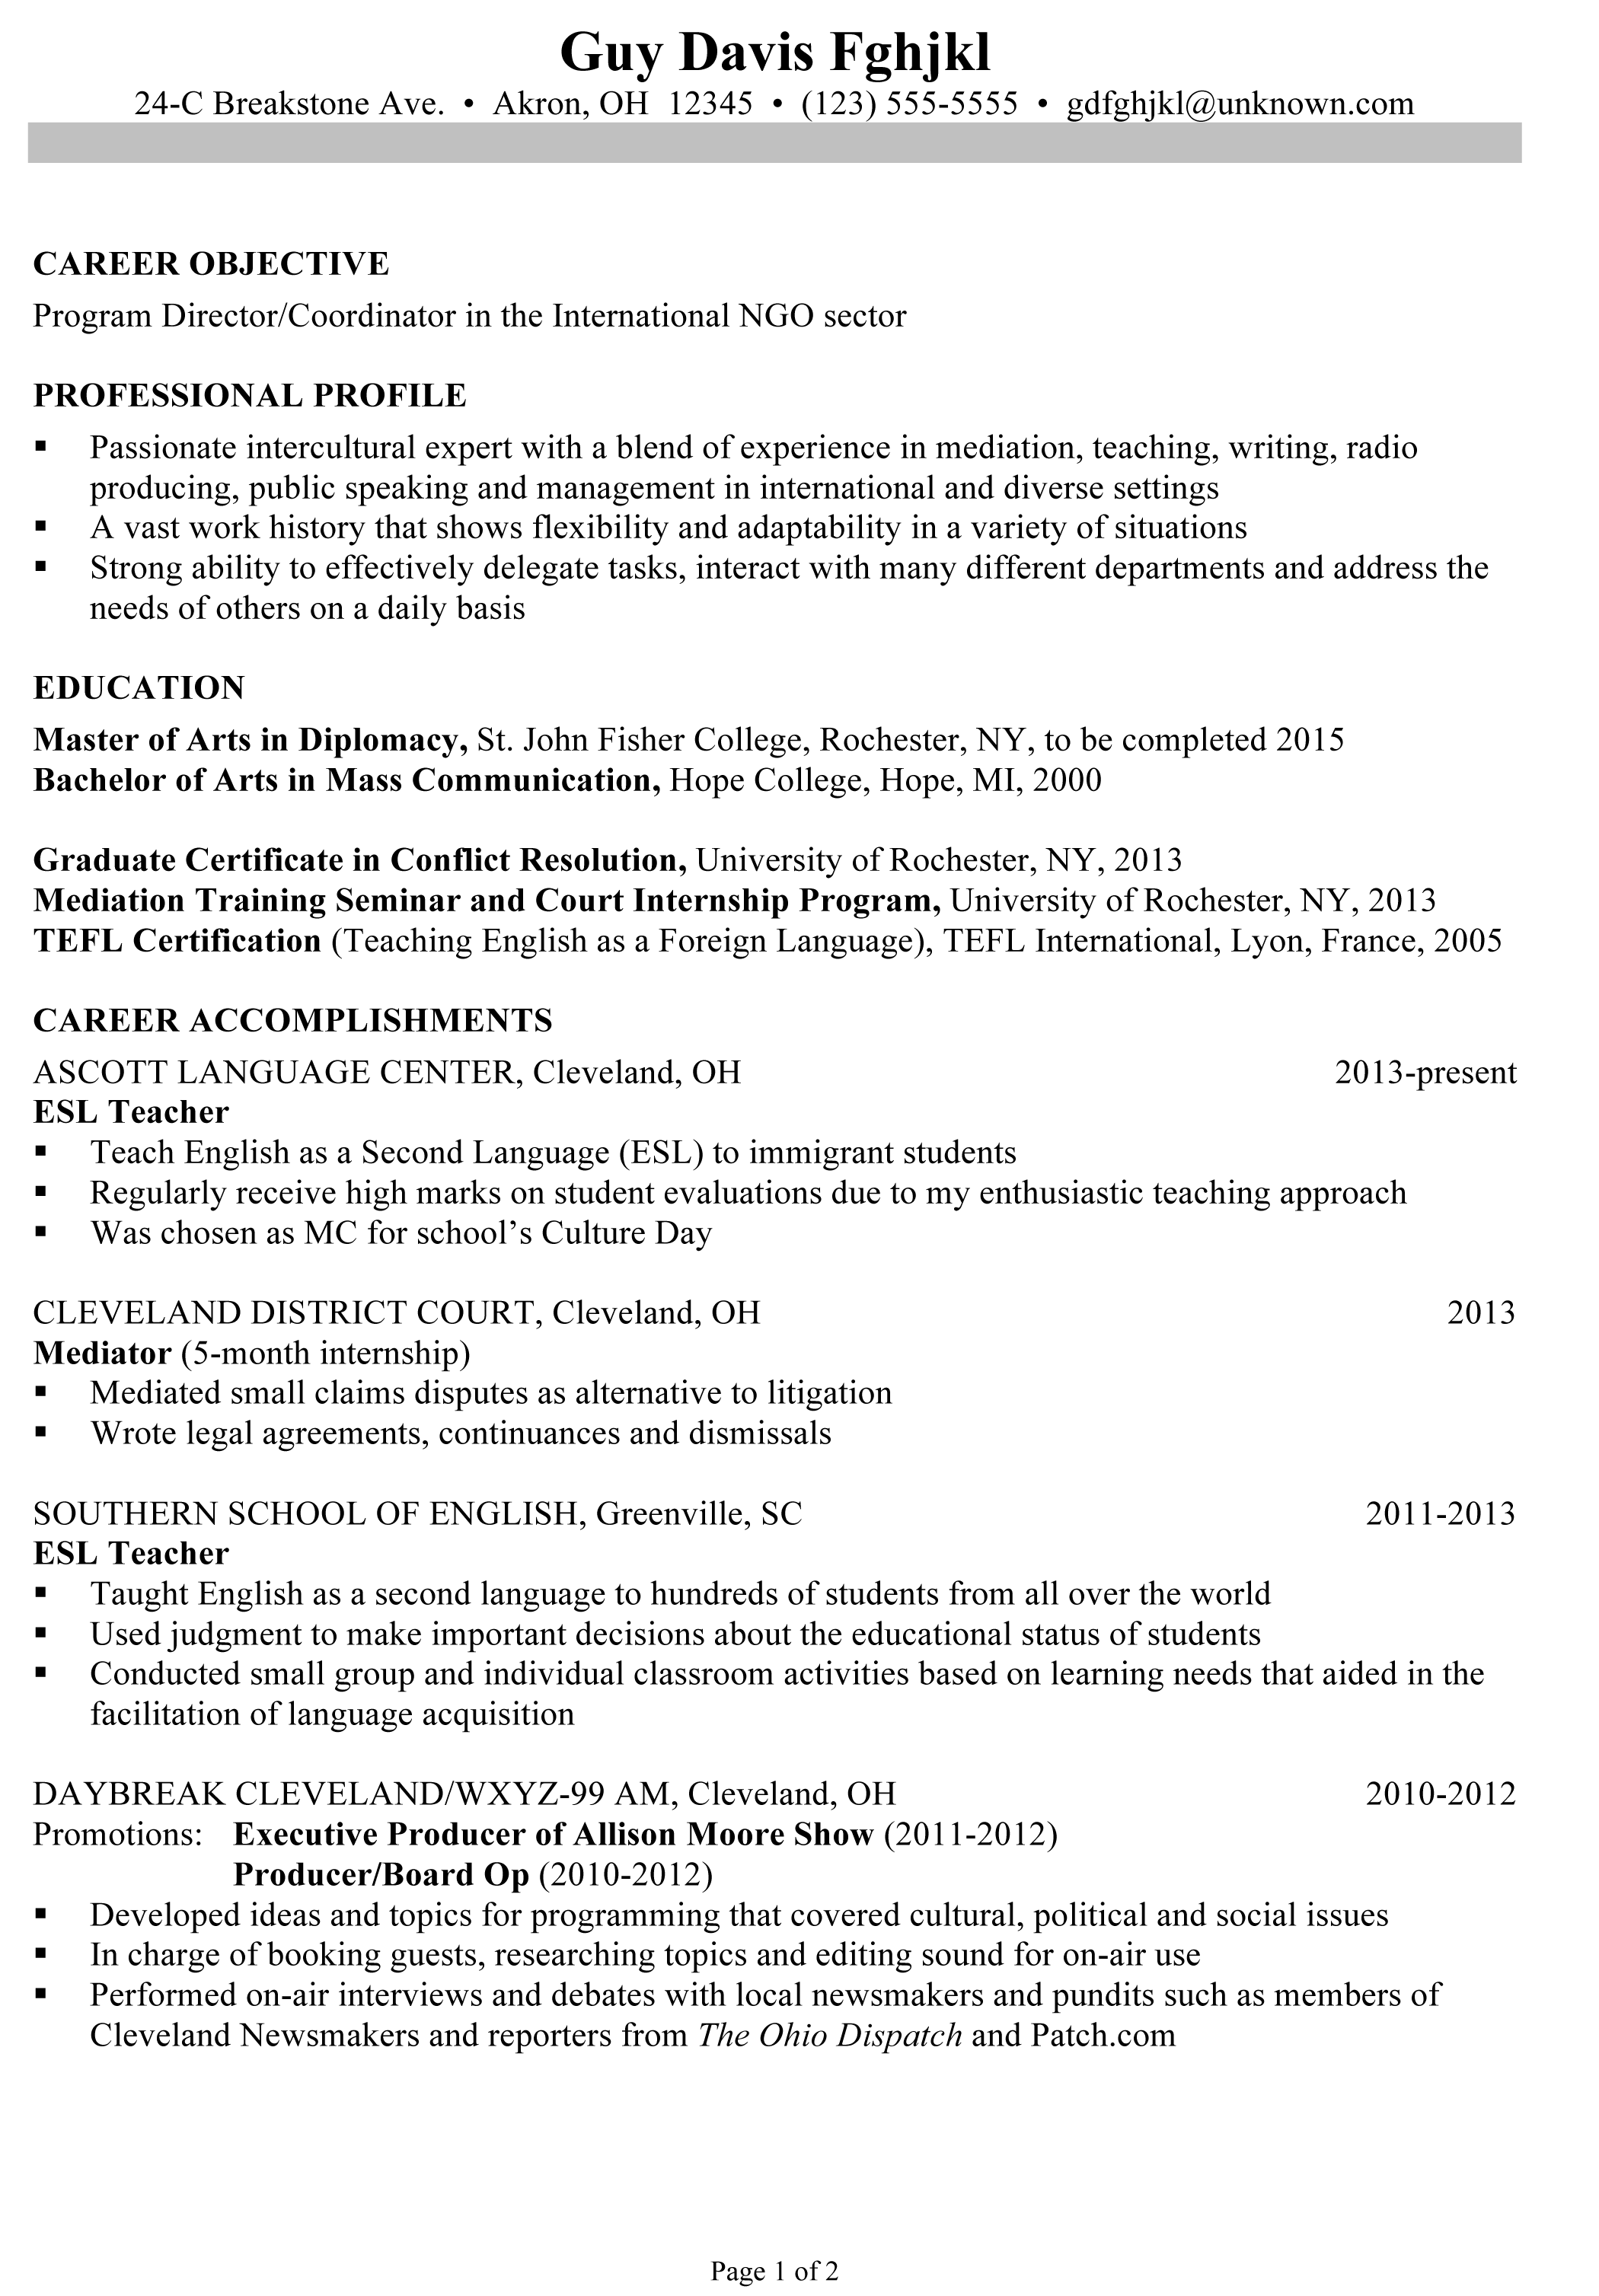 sales professional resume resume example sales professional 0ece8dca8482a2d656d4101089deb60c examples of professional resumeshtml